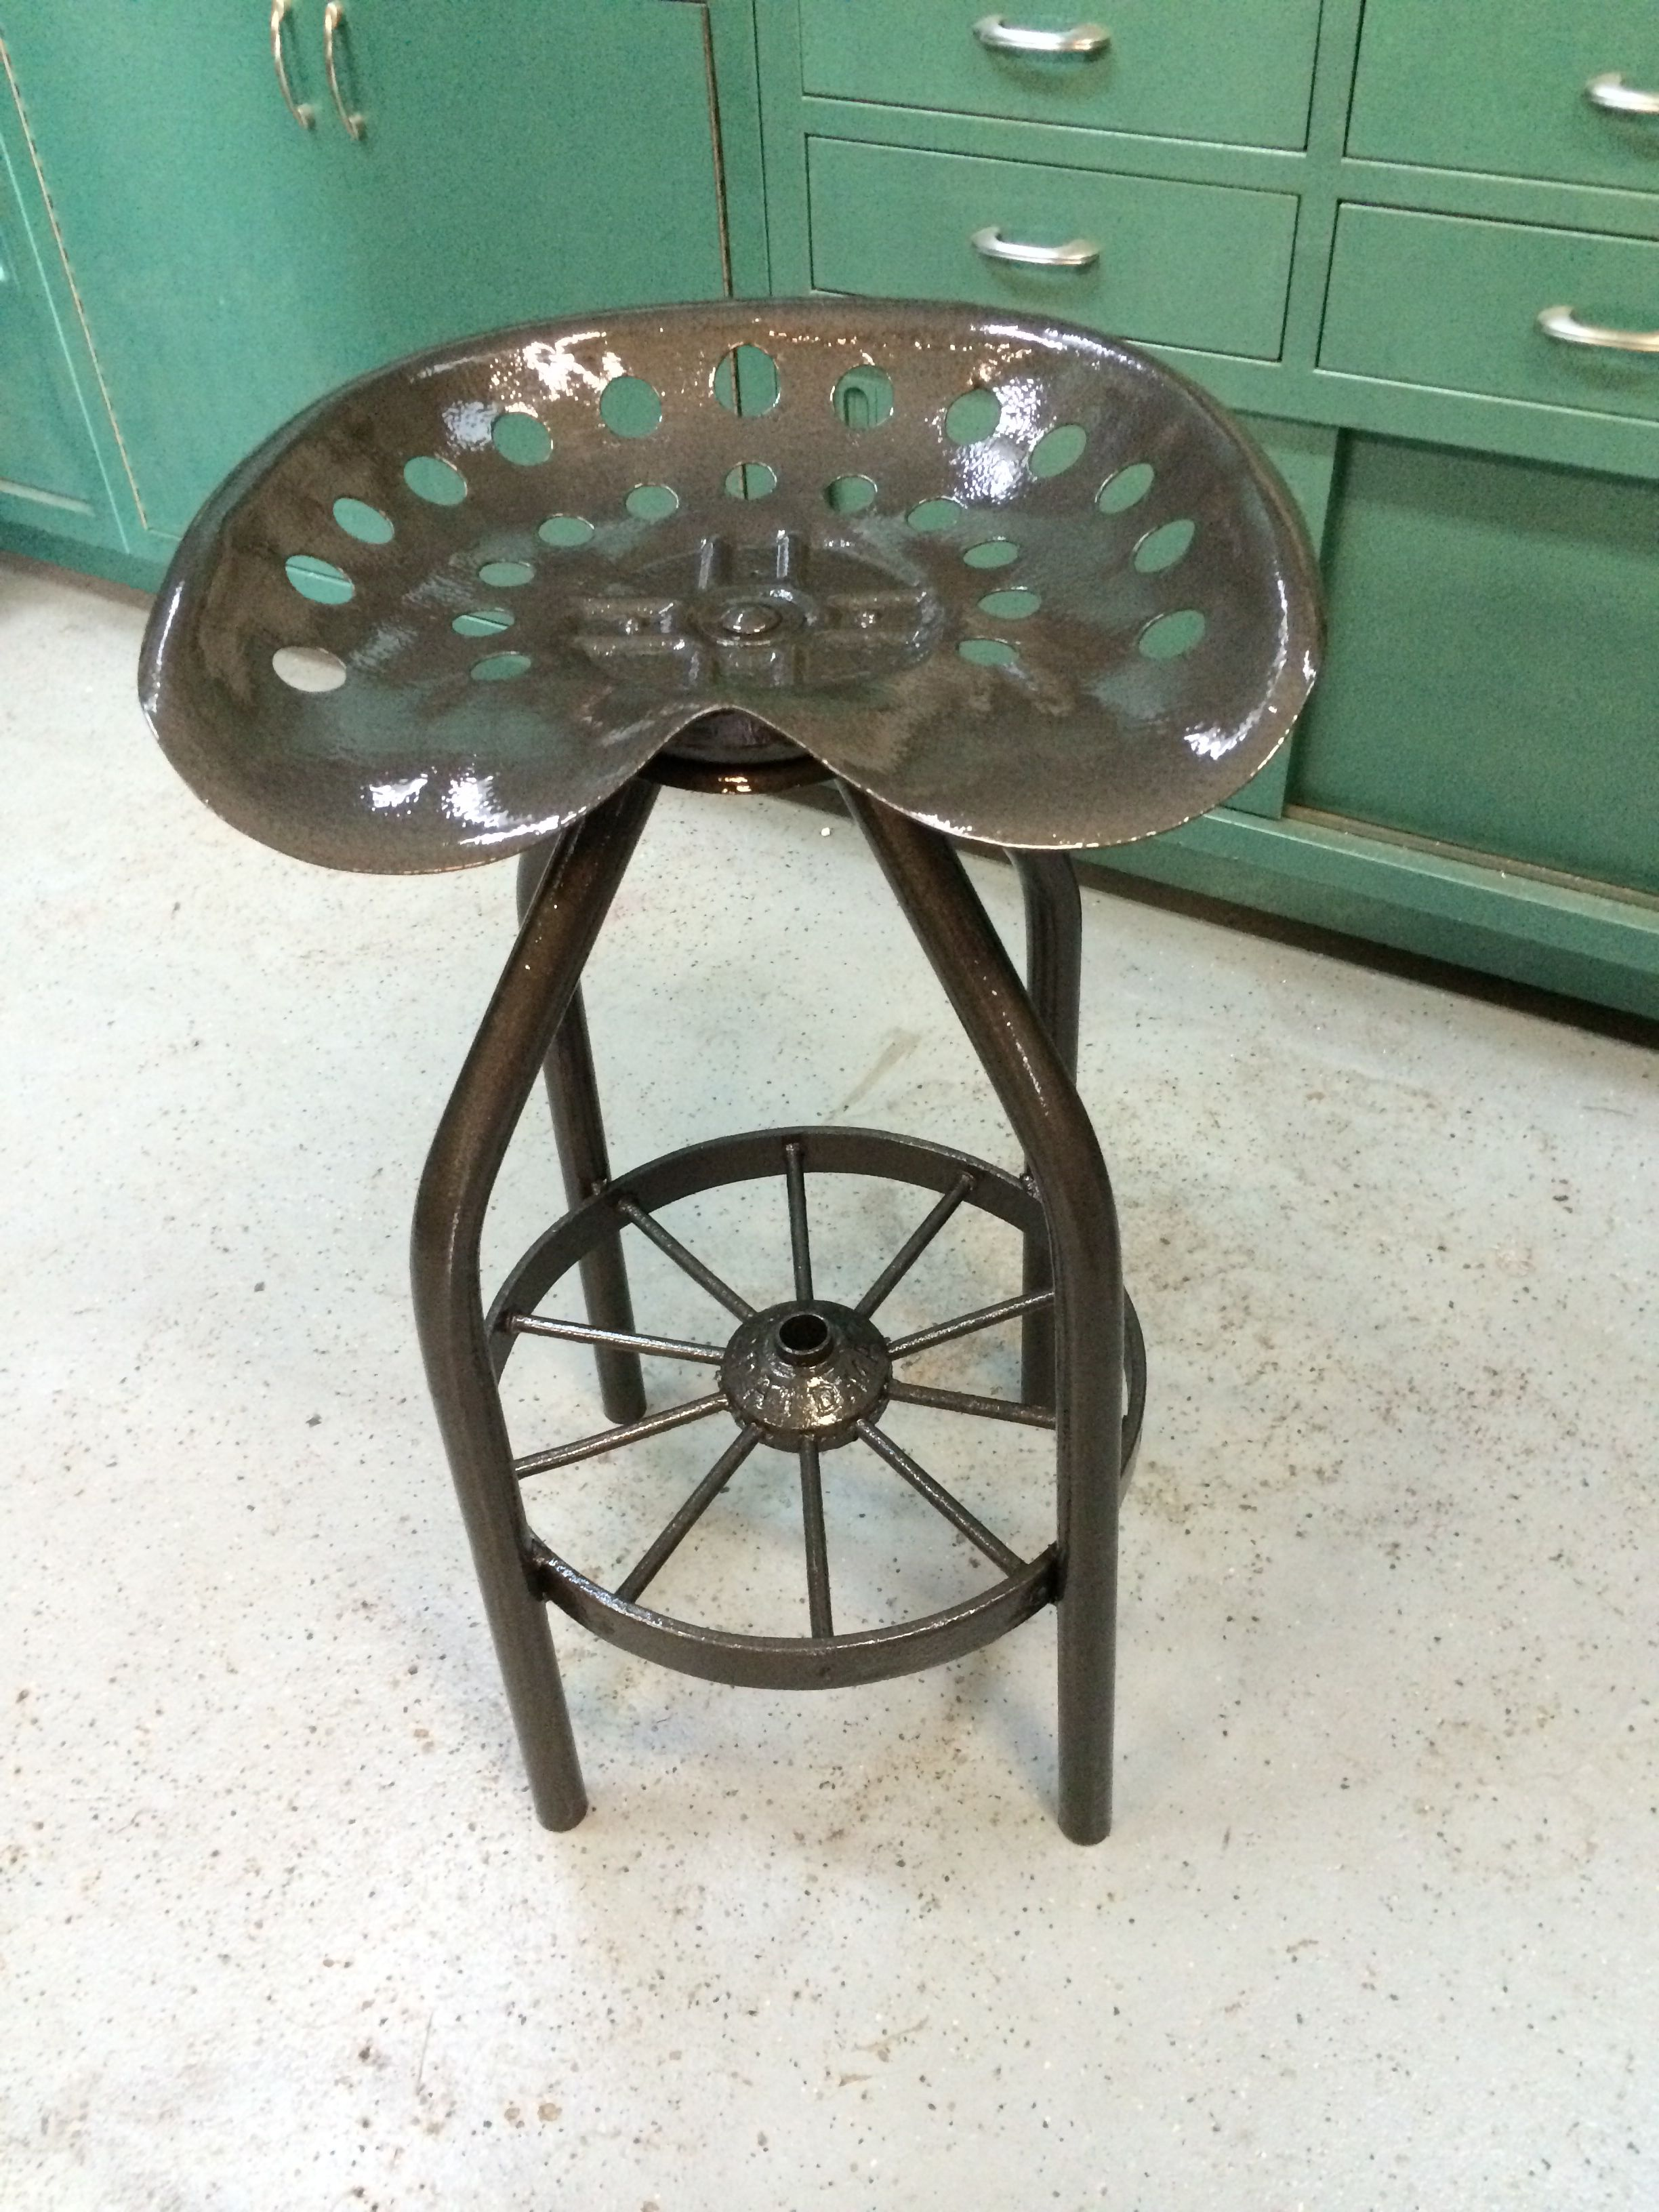 Tractor Seat Bar Shop Stool That Swivels With Wagon Wheel